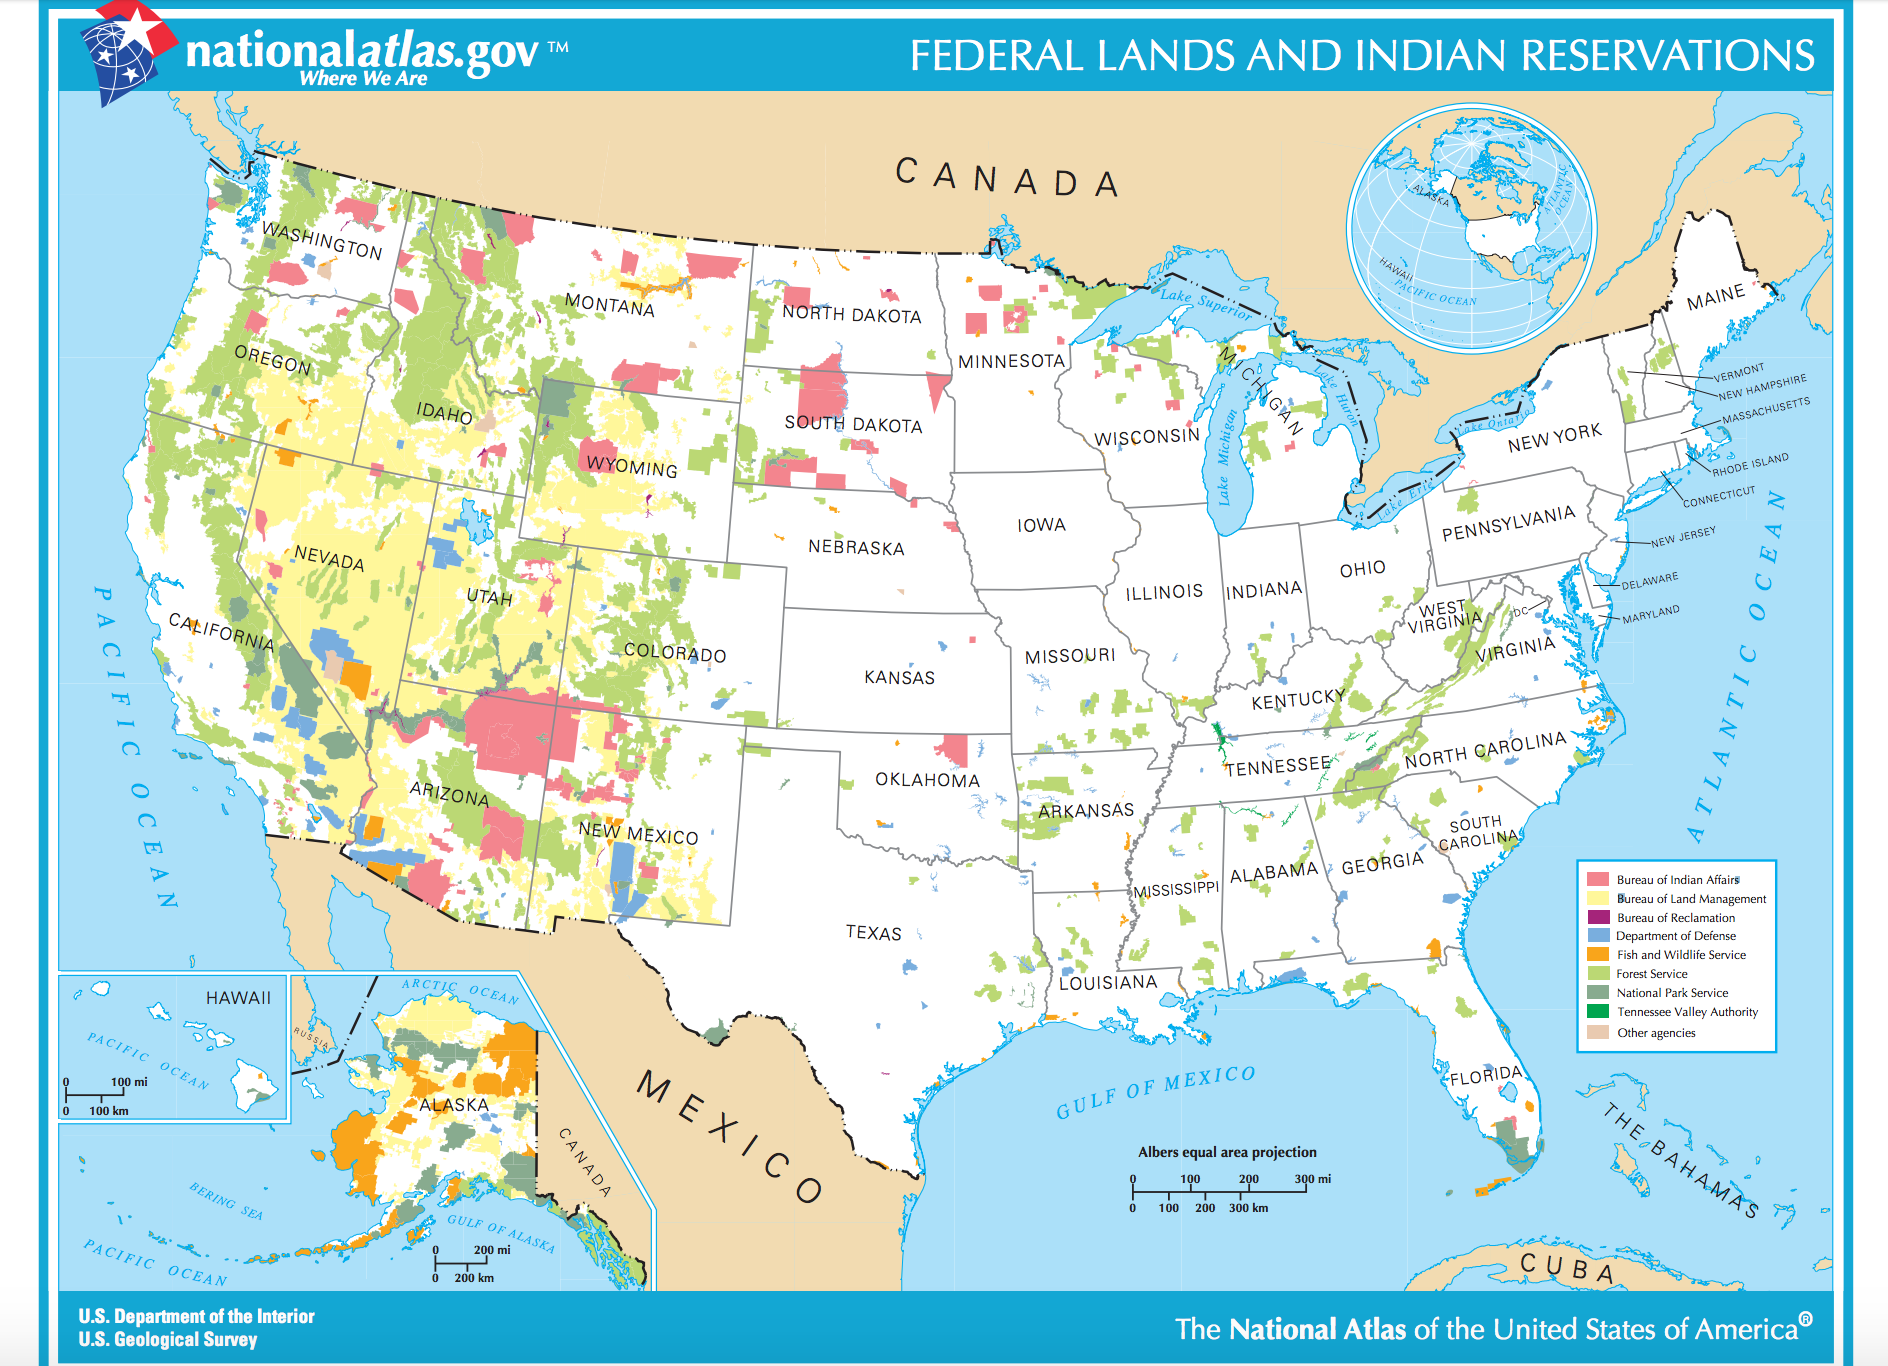 7 Alternatives to Handing Public Federal Land Over to States